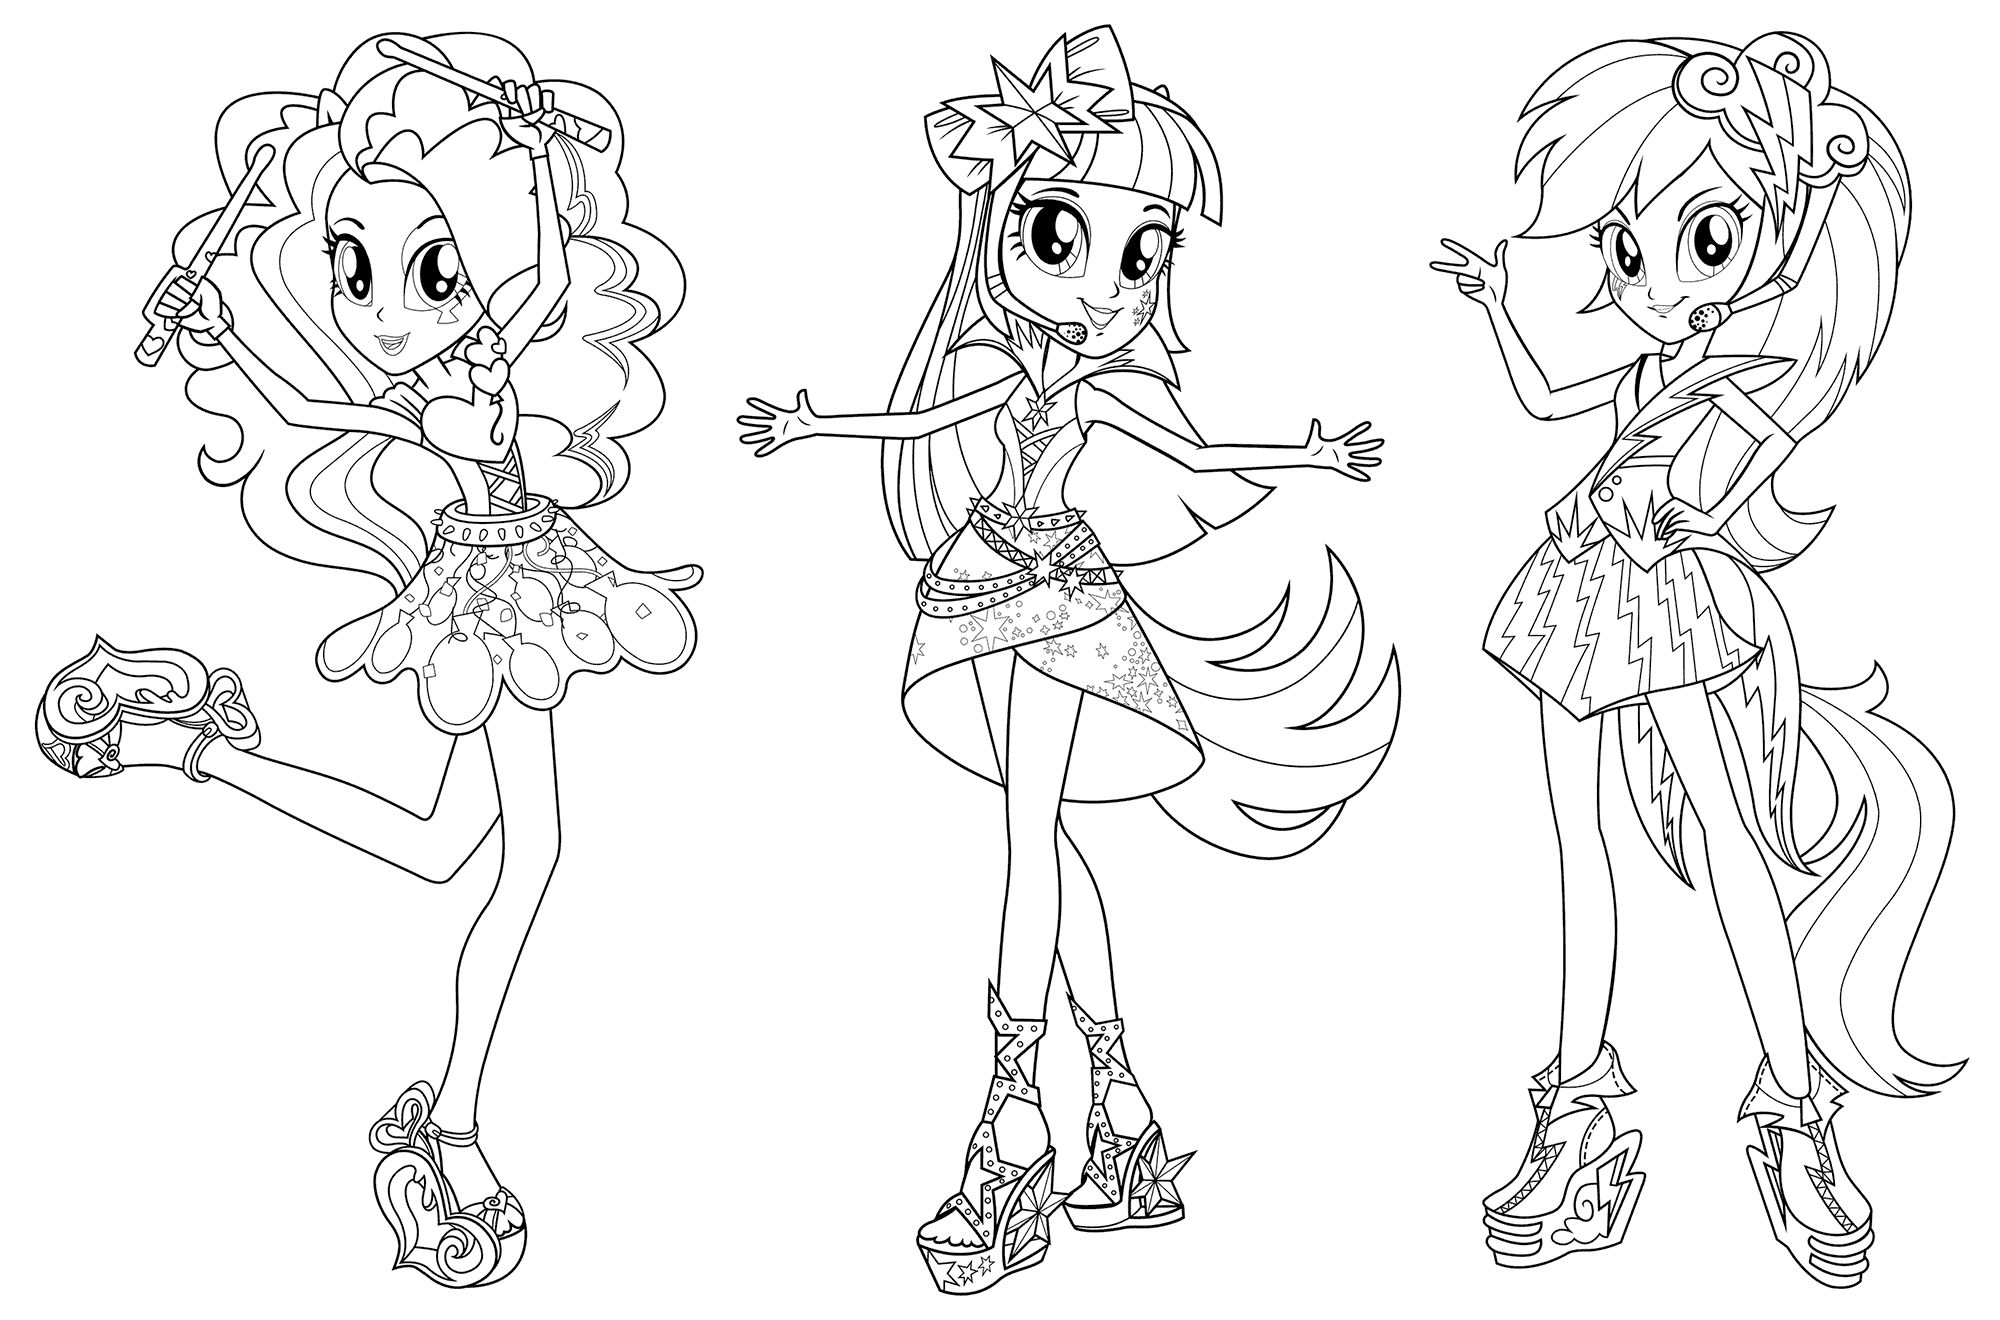 Coloring Pages My Little Pony Equestria Girls Printable